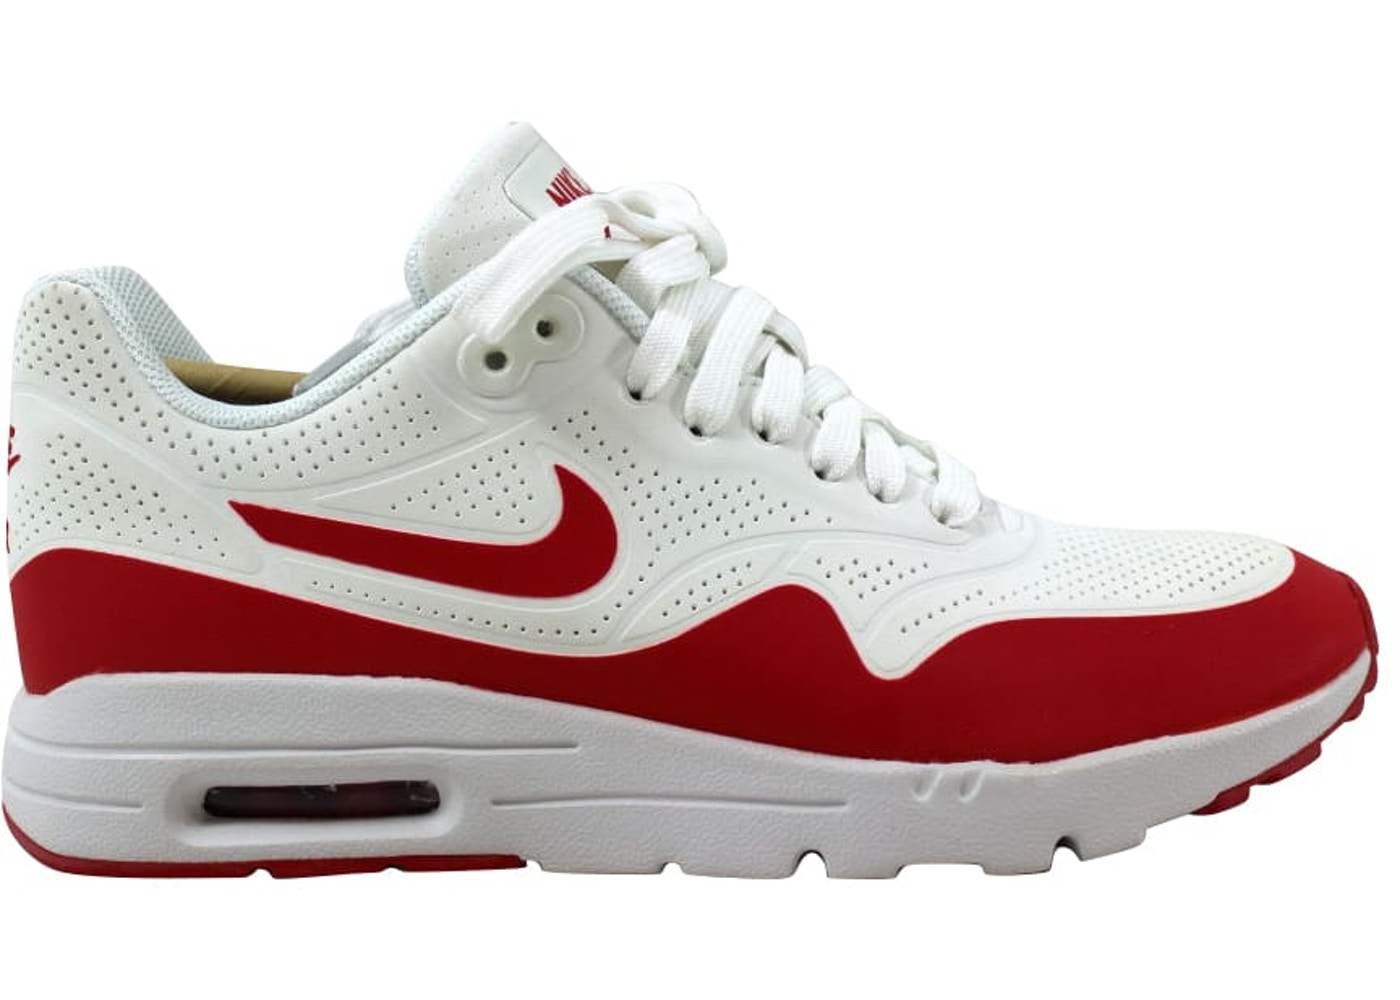 7121ebc6f9 Sell. or Ask. Size: 10W. View All Bids. Nike Air Max 1 Ultra Moire Summit  White/University ...